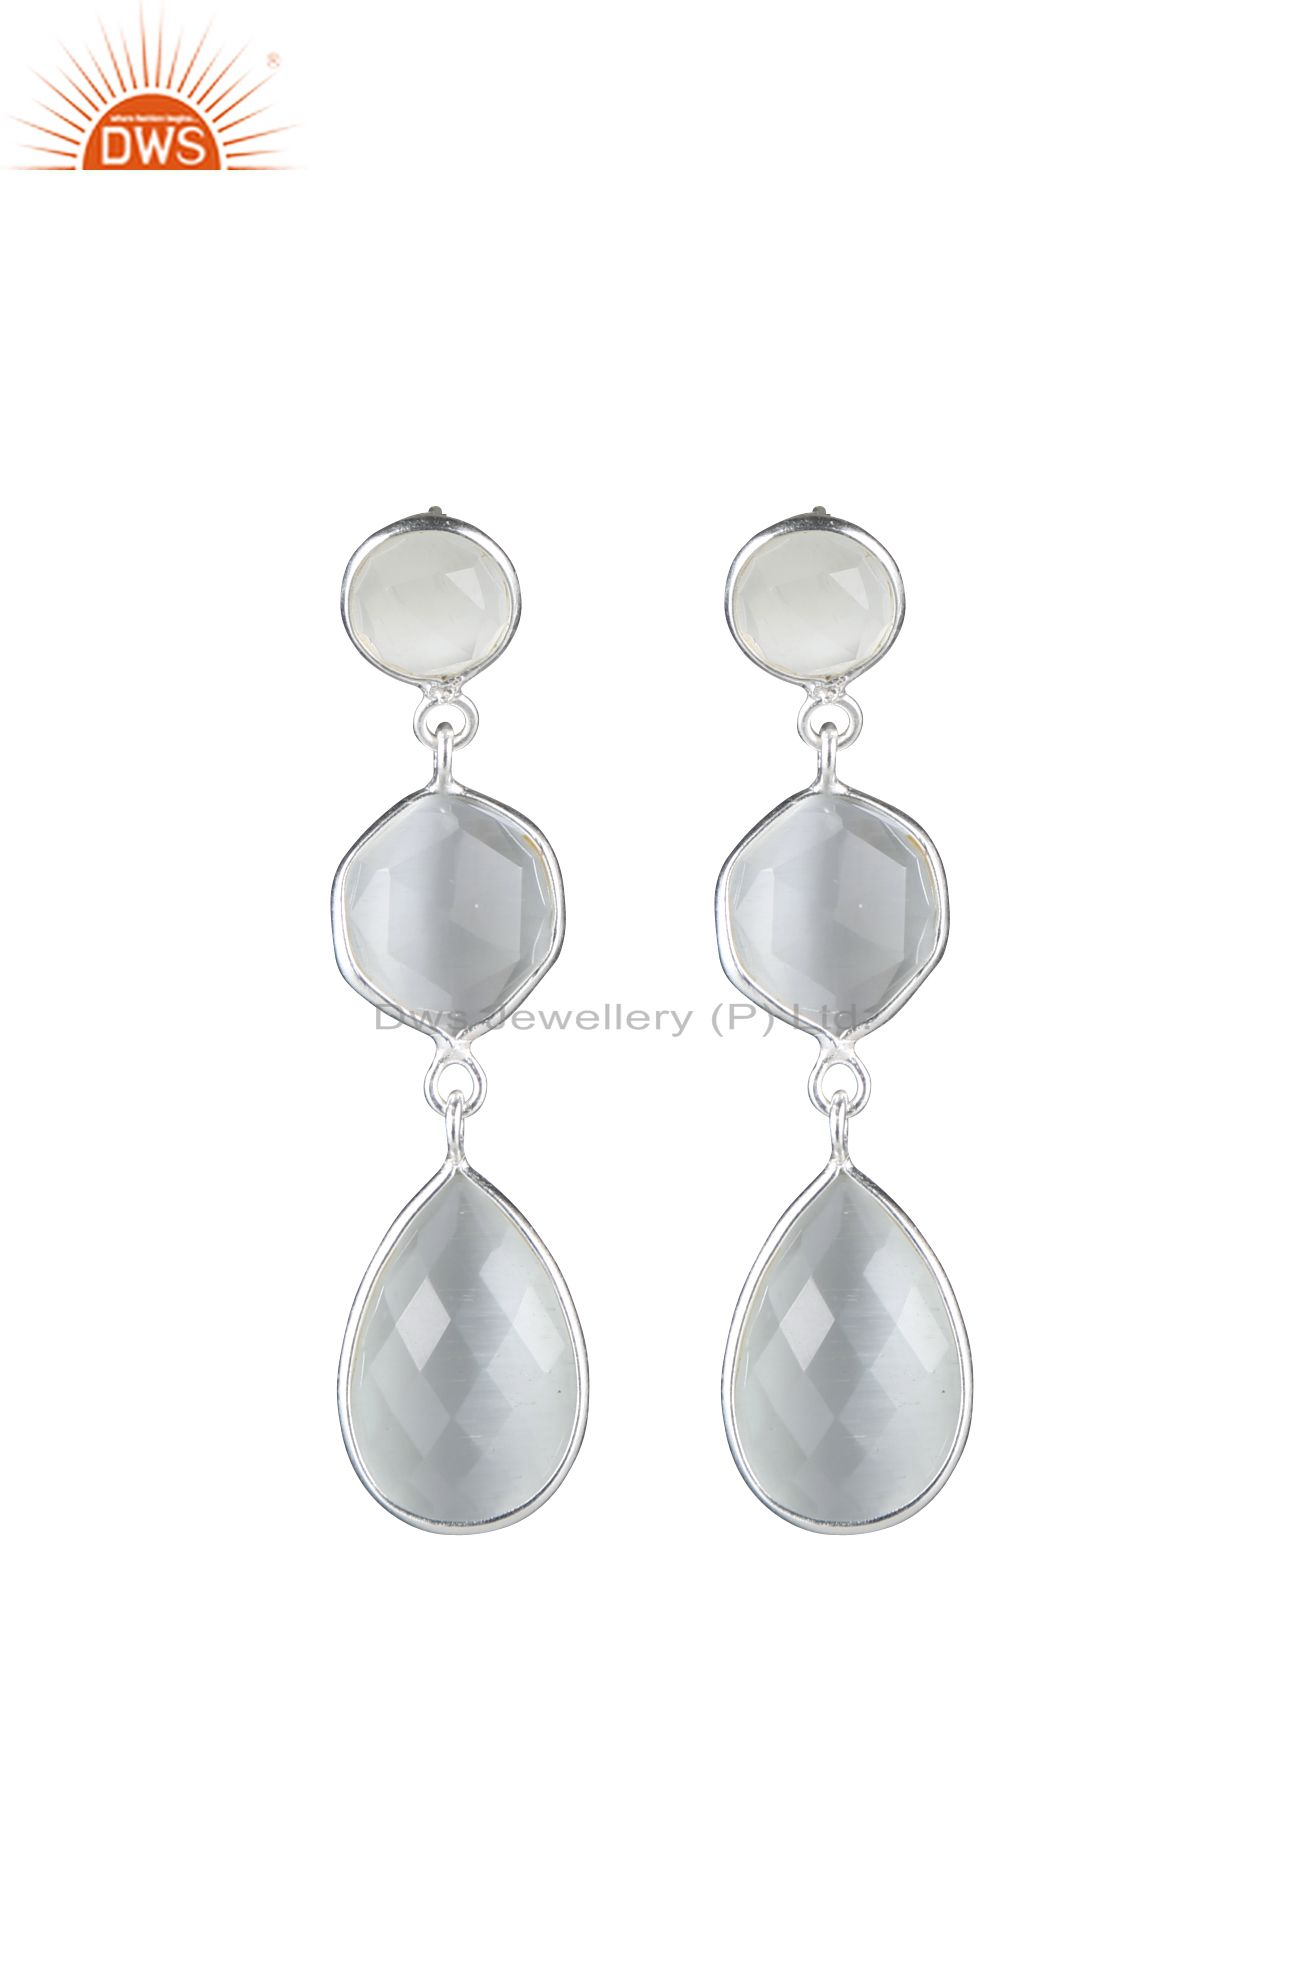 925 Sterling Silver White Moonstone Bezel Set Triple Gemstone Dangle Earrings